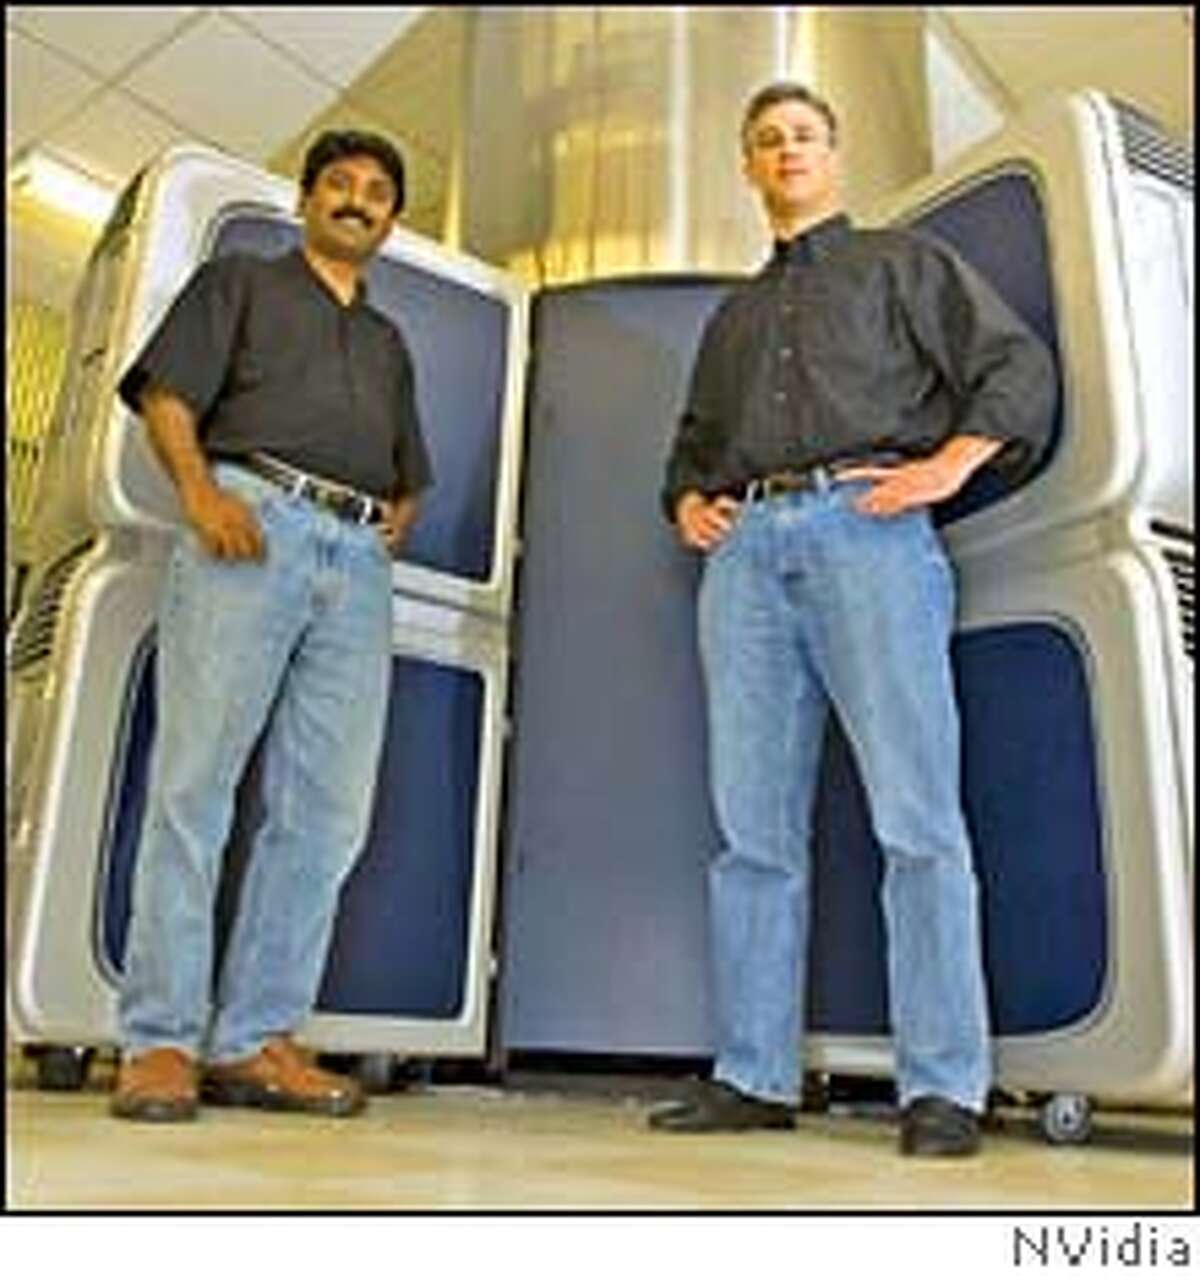 Narendra Konda (left) and Brian Kellerher test chip designs at Nvidia using the customized computer array from Cadence Design Systems. source: Nvidia